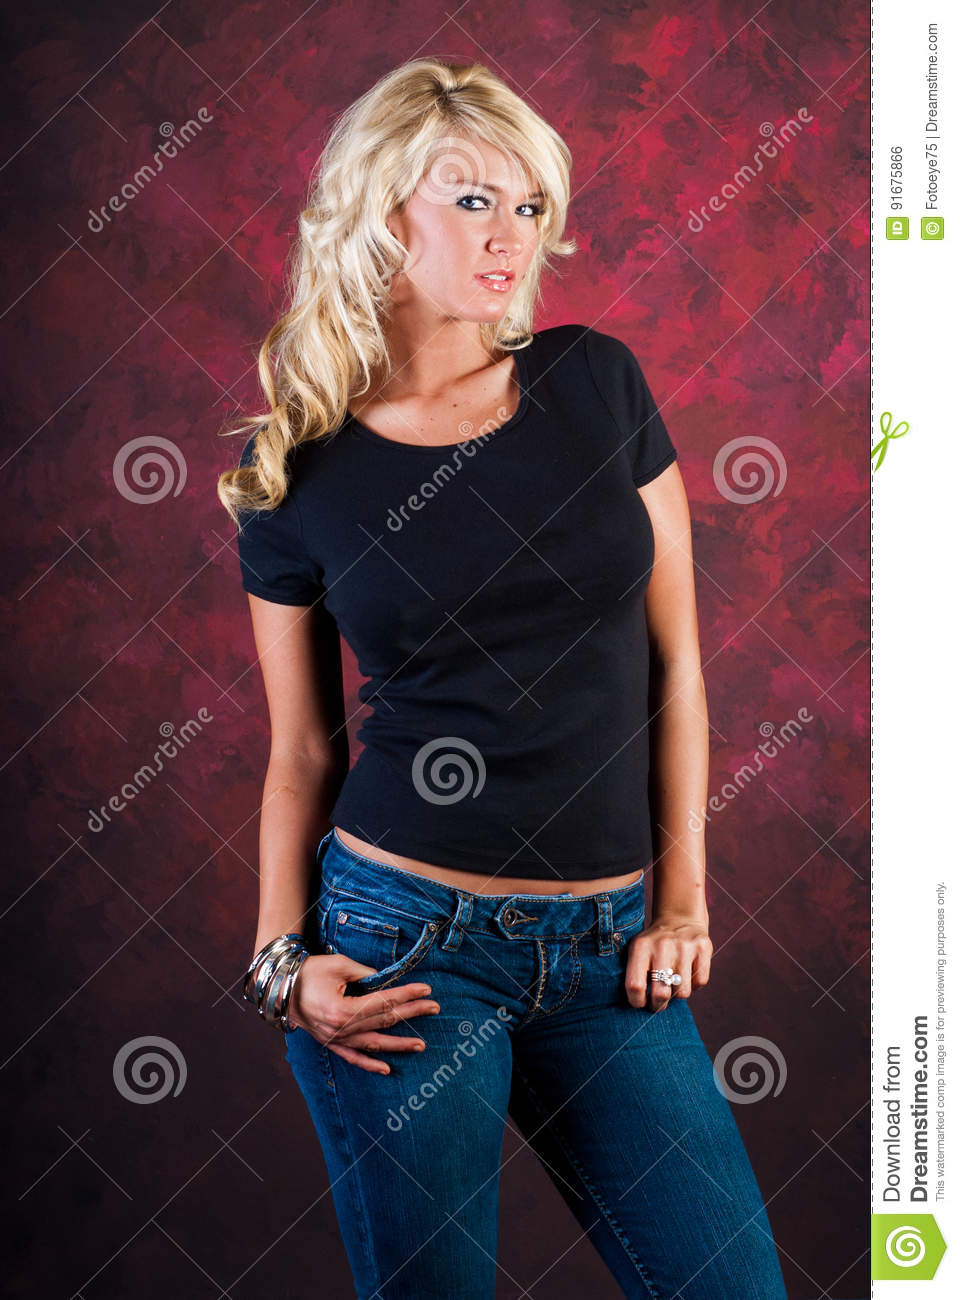 blonde girl fashion model in blue jeans